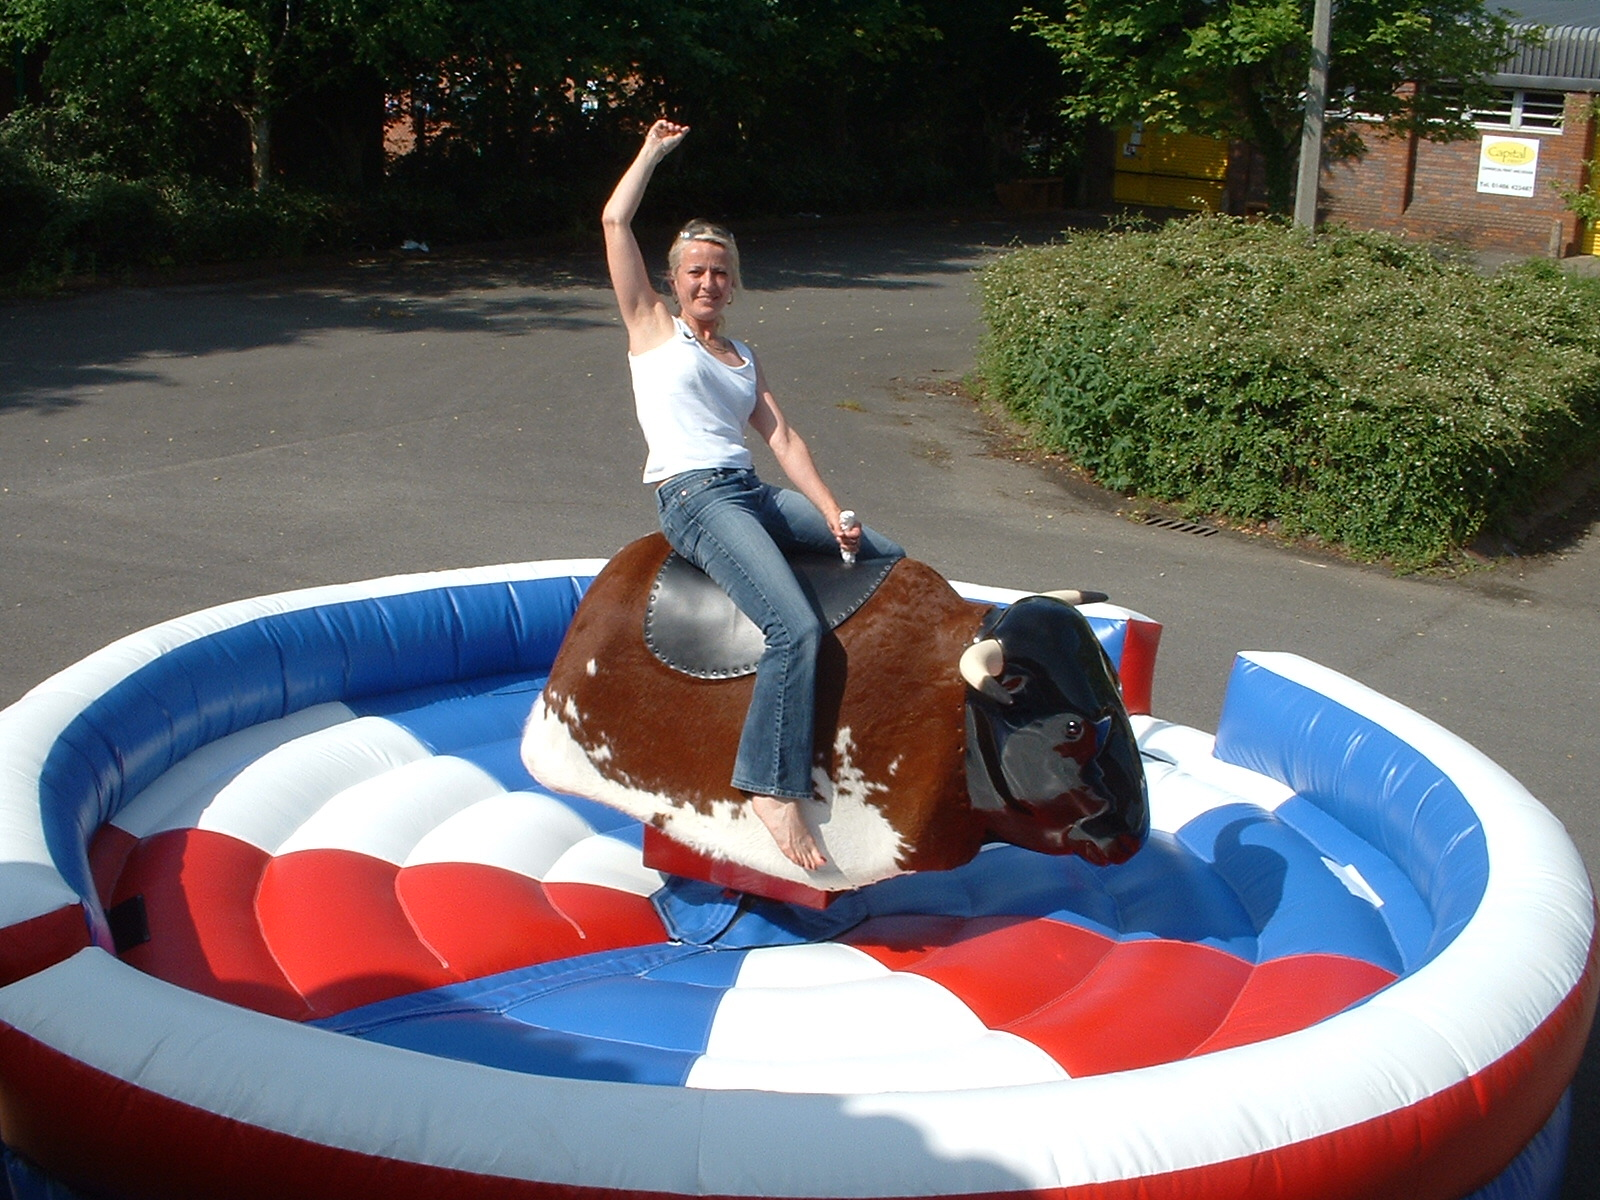 Rodeo Bull A.K.A Bucking Bronco